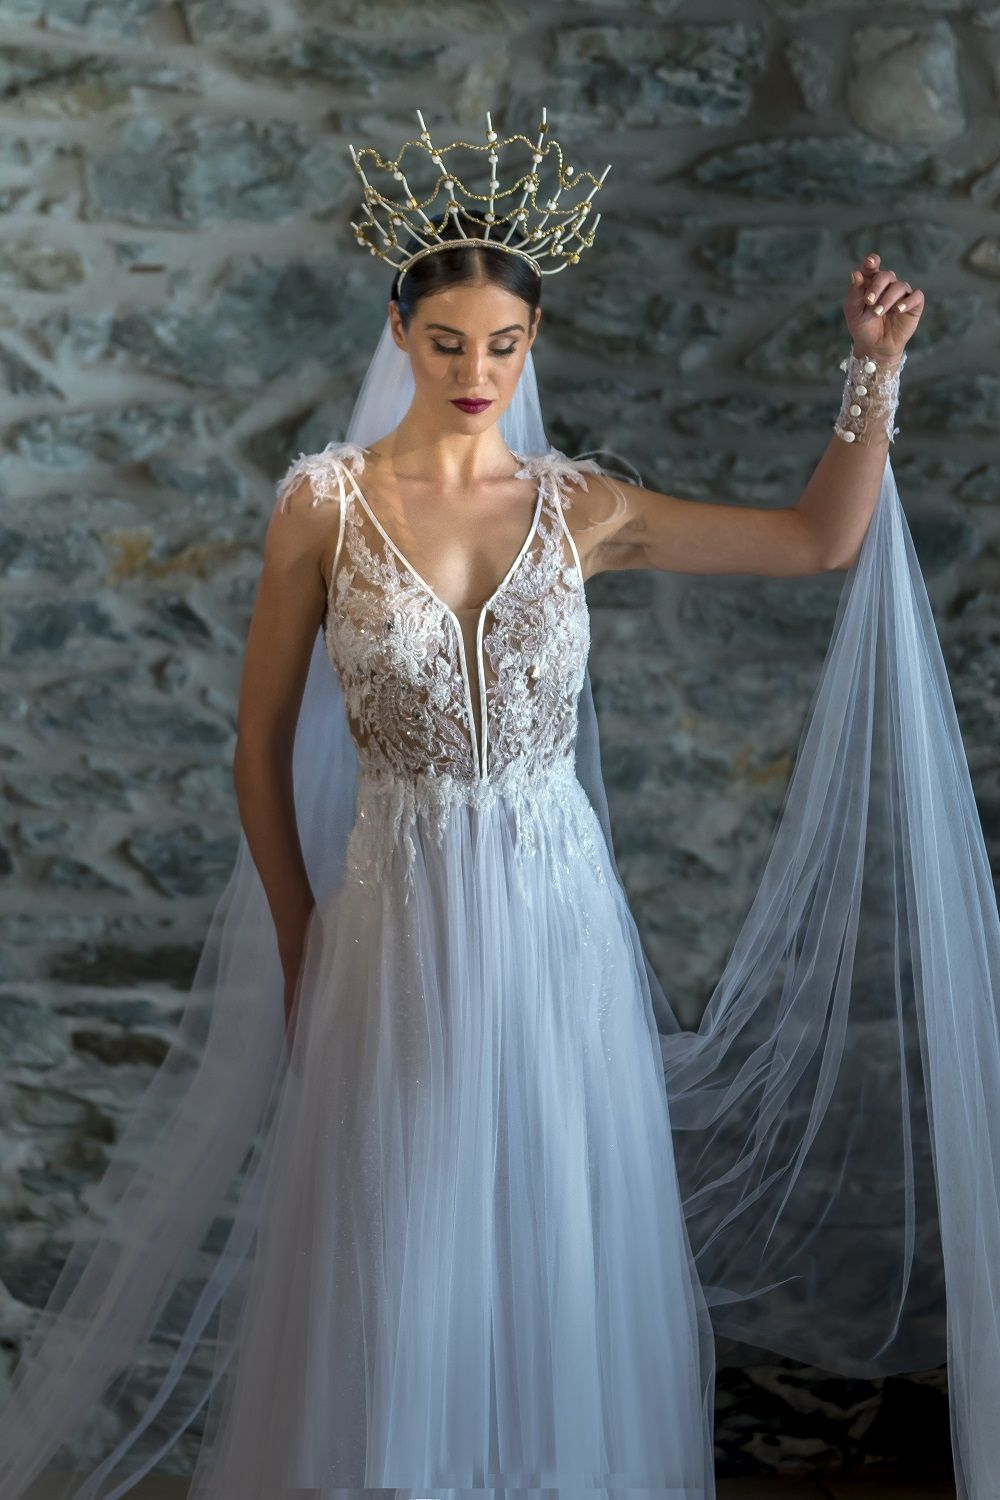 Bad wedding dresses  New Bridal Collection uLike a fairytaleu Bridal Couture Wedding